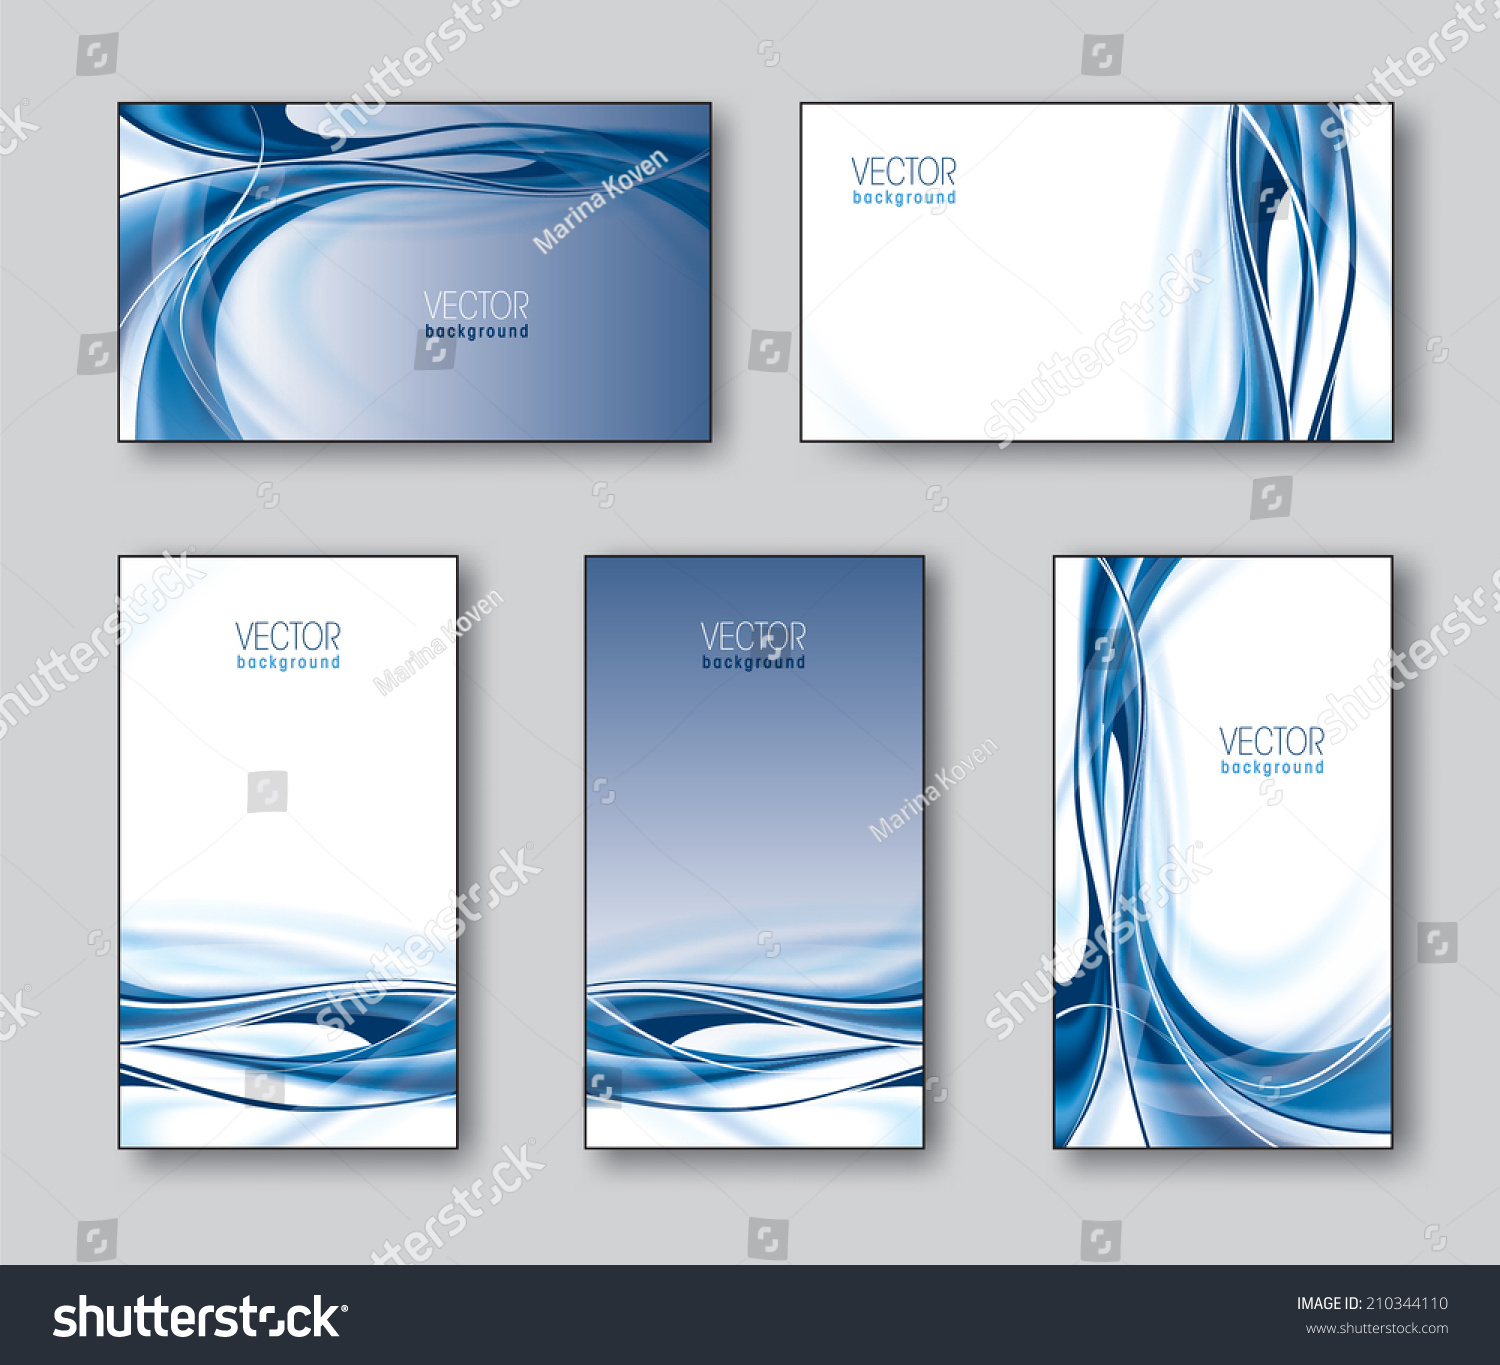 vector collection business cards t cards stock vector